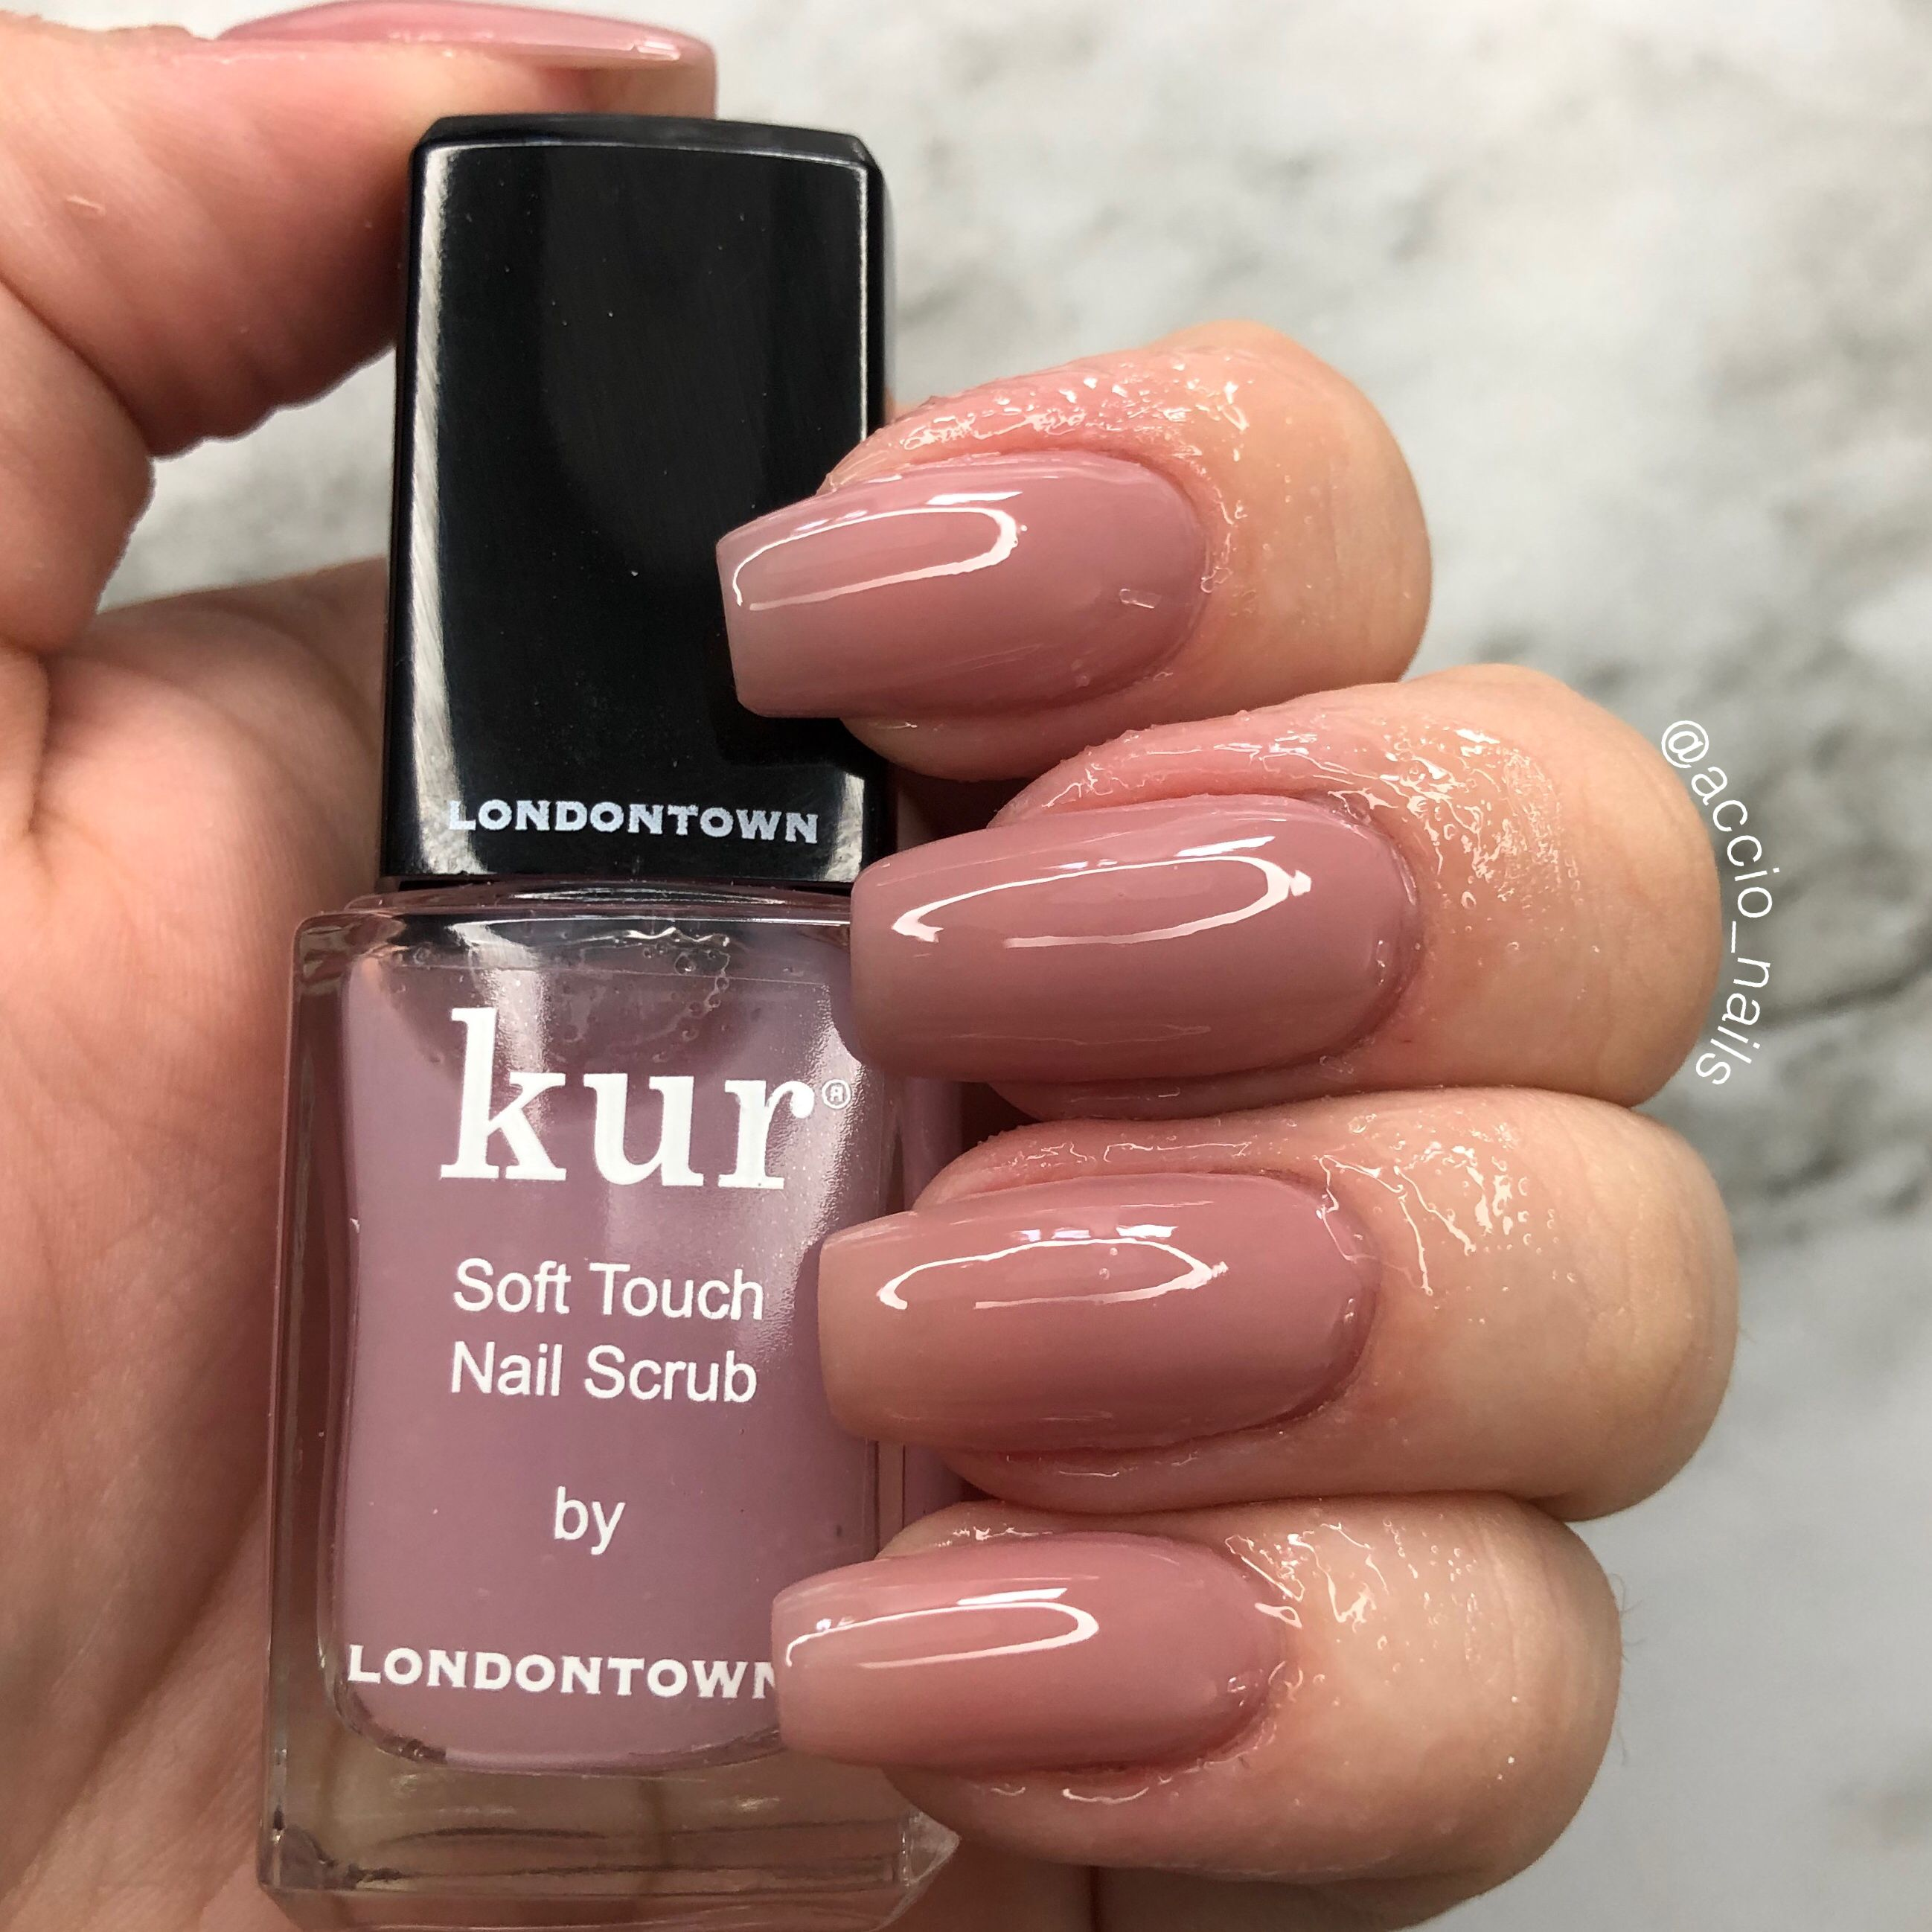 Get Yourself The Best Fitness Products For Your Home Www Fitrendys Com Up To 75 Off Natural Looking Nails Nail Polish Artificial Nails